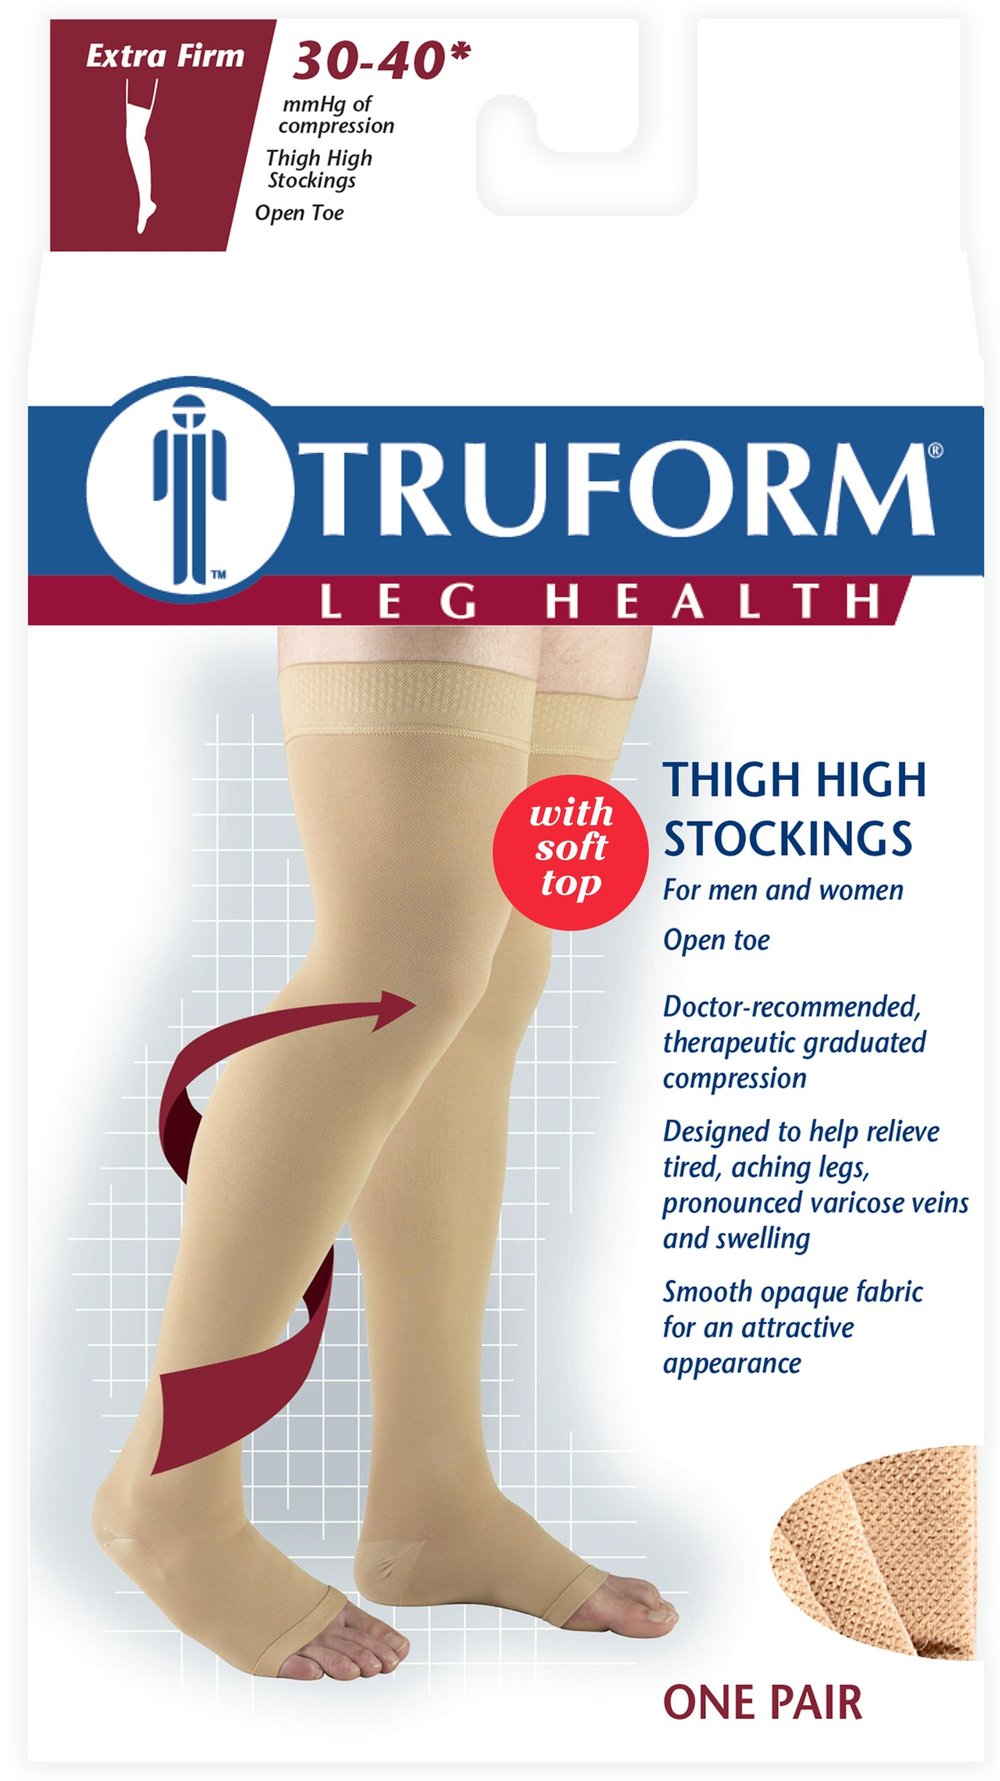 0846 / THIGH HIGH - SOFT TOP, OPEN TOE / 30-40 MMHG PACKAGING IMAGE